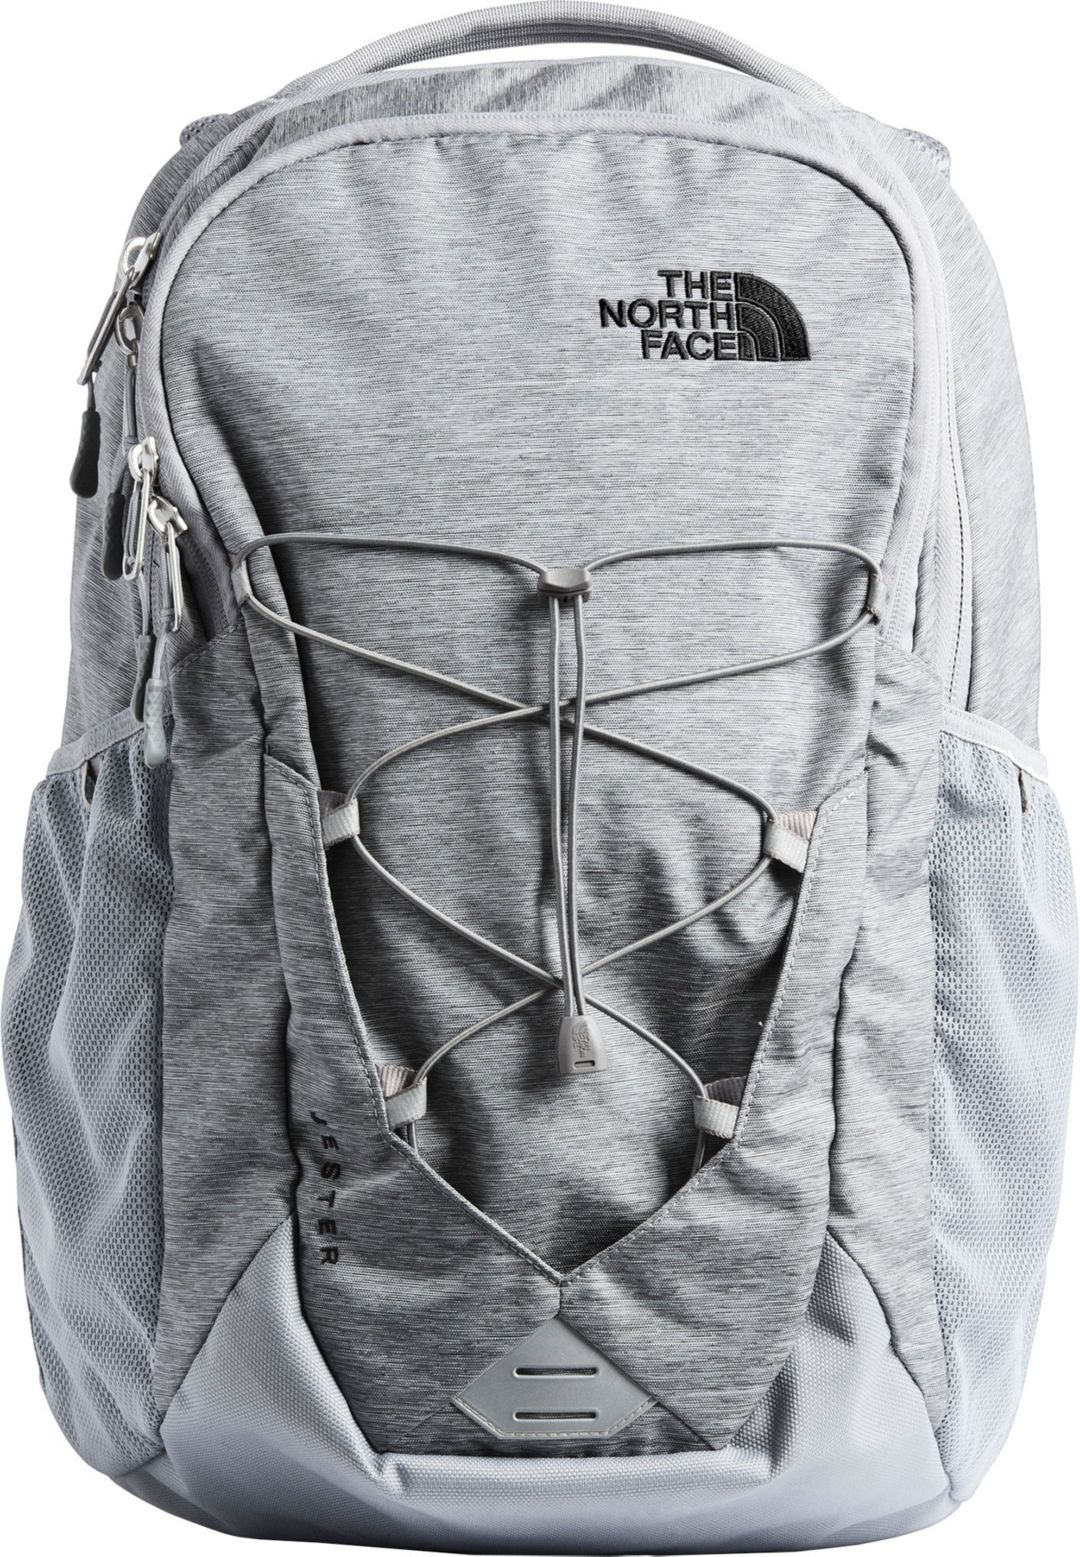 0e93021b5 The North Face Men's Jester Backpack | DICK'S Sporting Goods